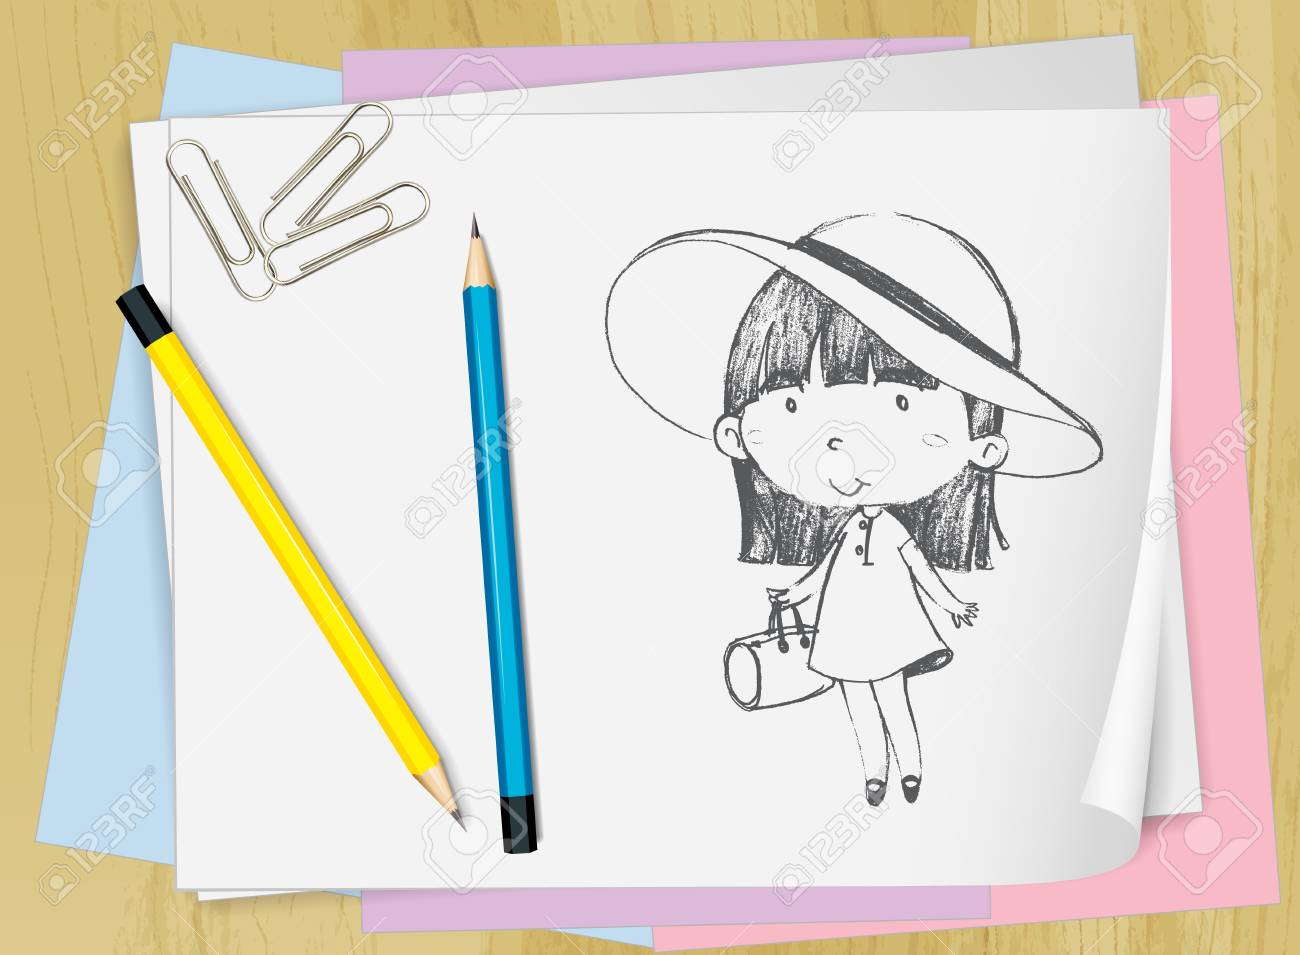 Illustration of a girl drawn on paper Stock Vector - 13800598